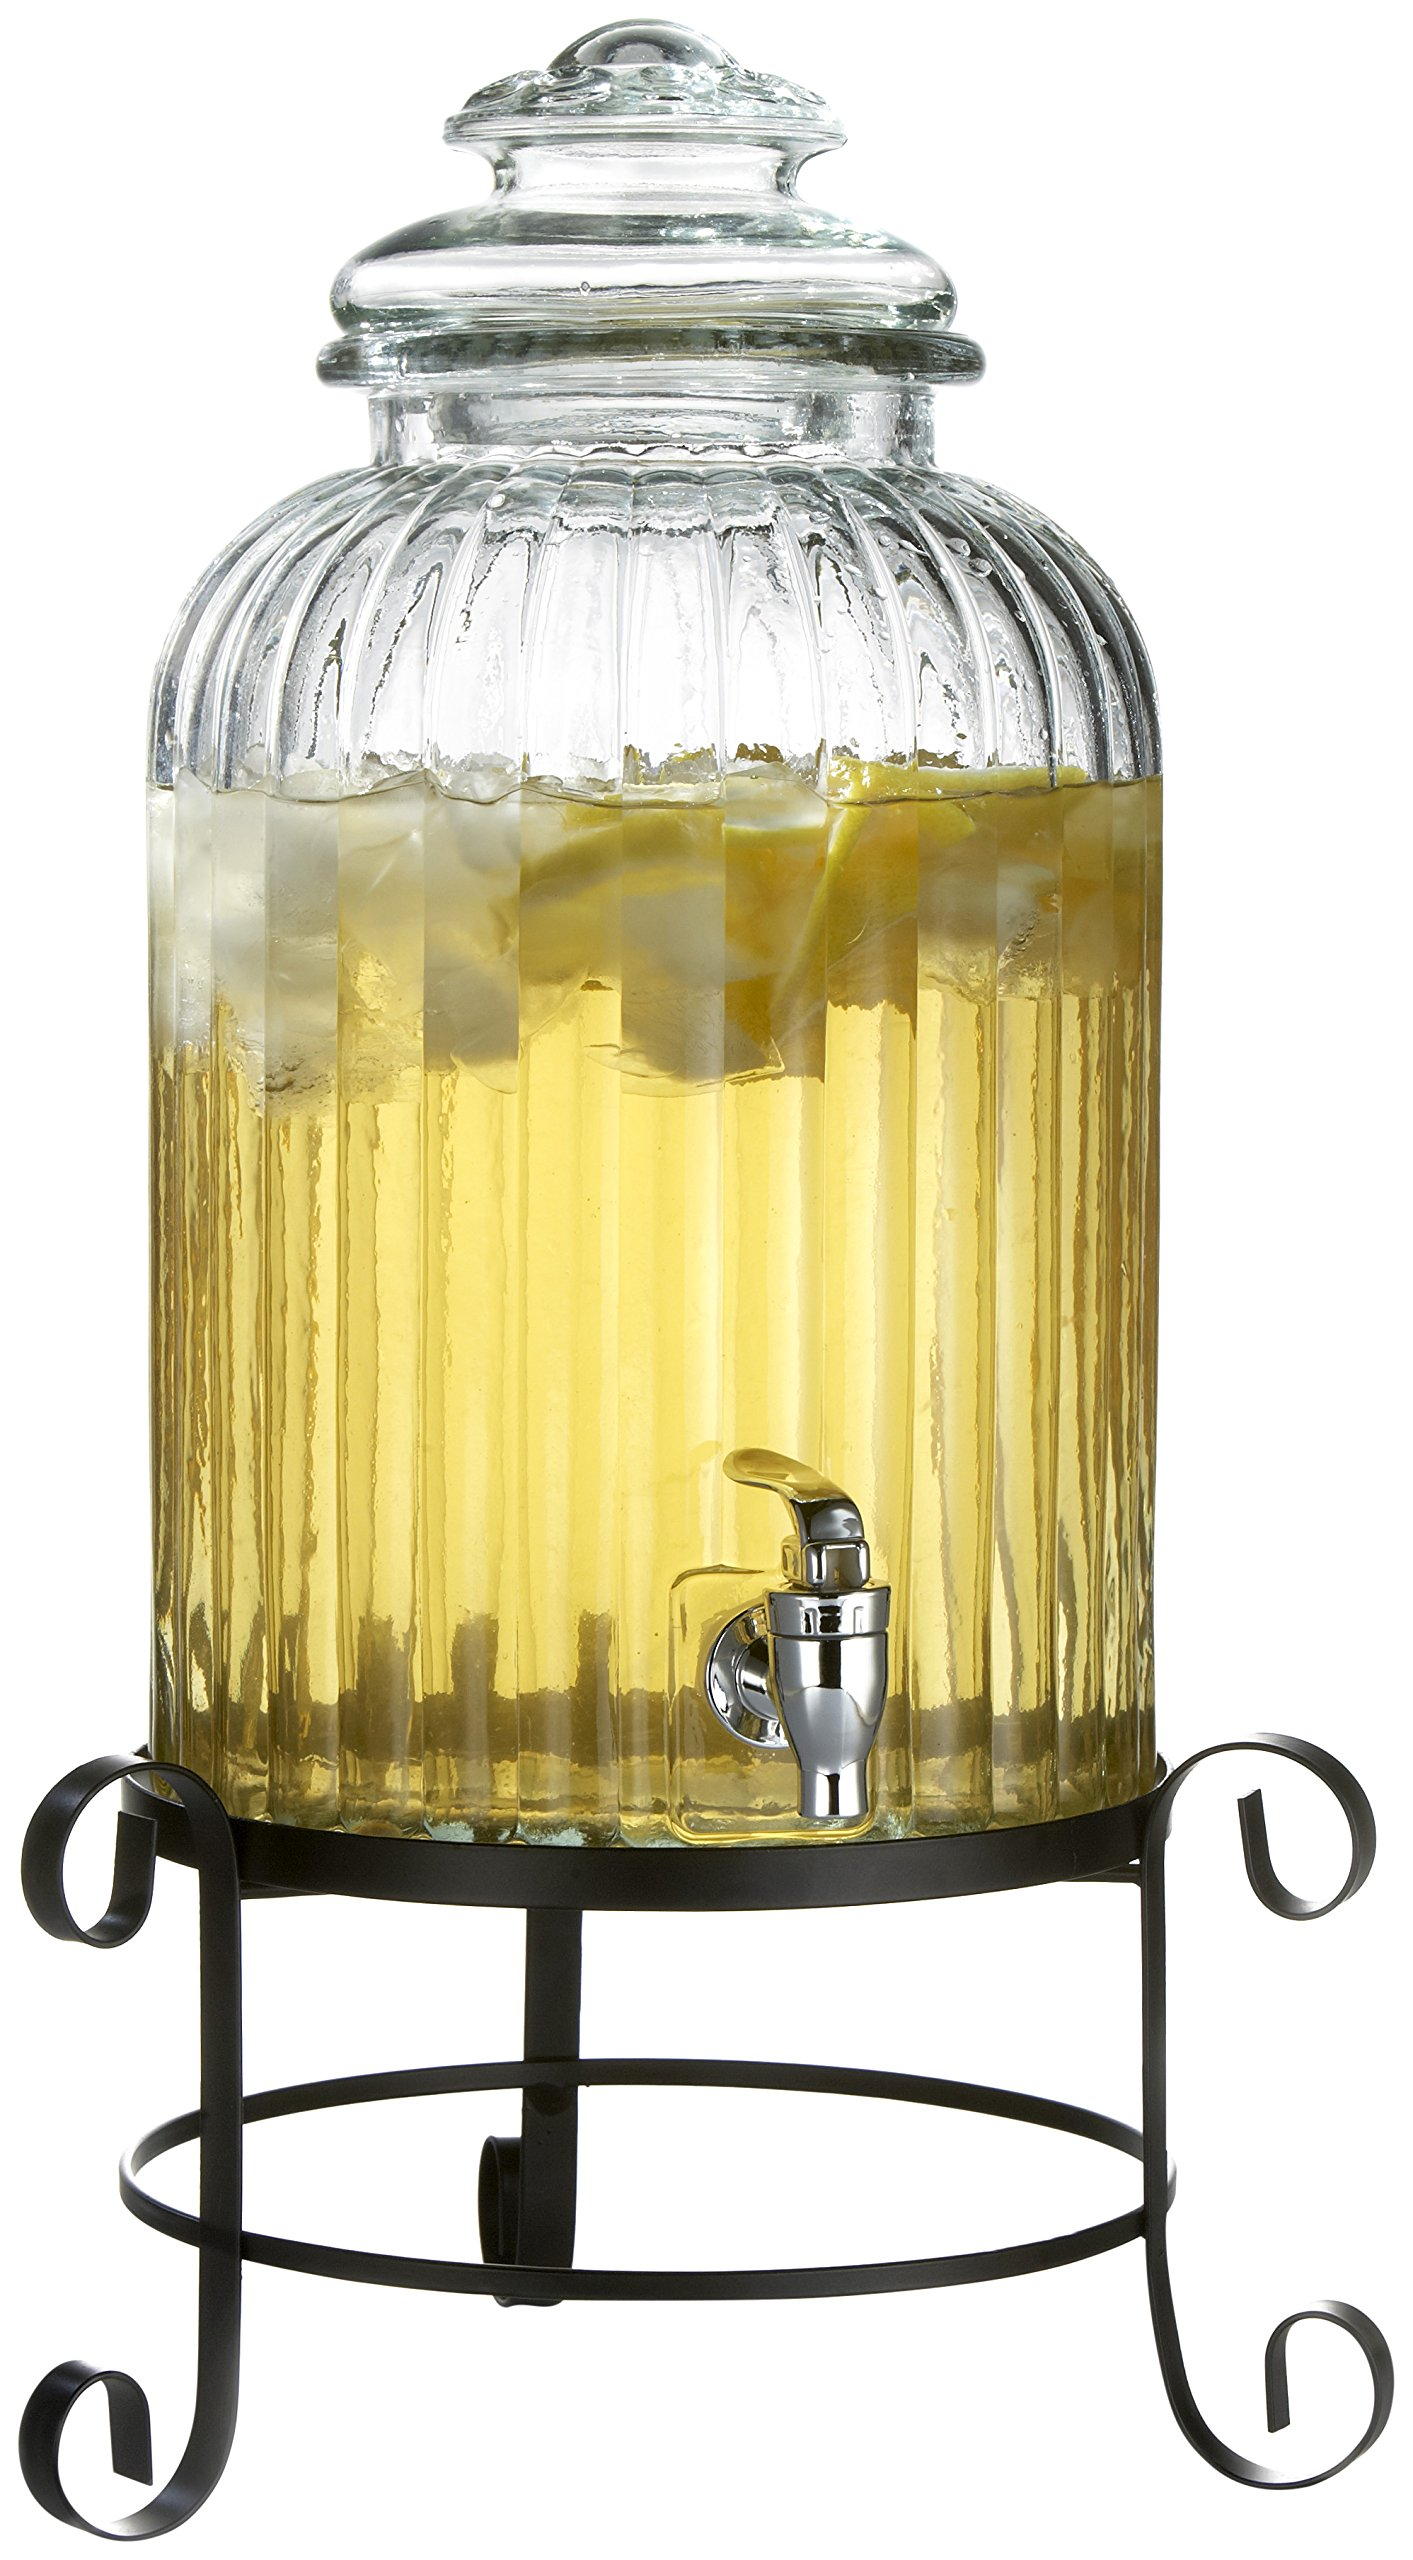 Style Setter Springfield 210919-RB 3 Gallon Glass Beverage Drink Dispenser with Metal Stand & Glass Lid 21'' Clear